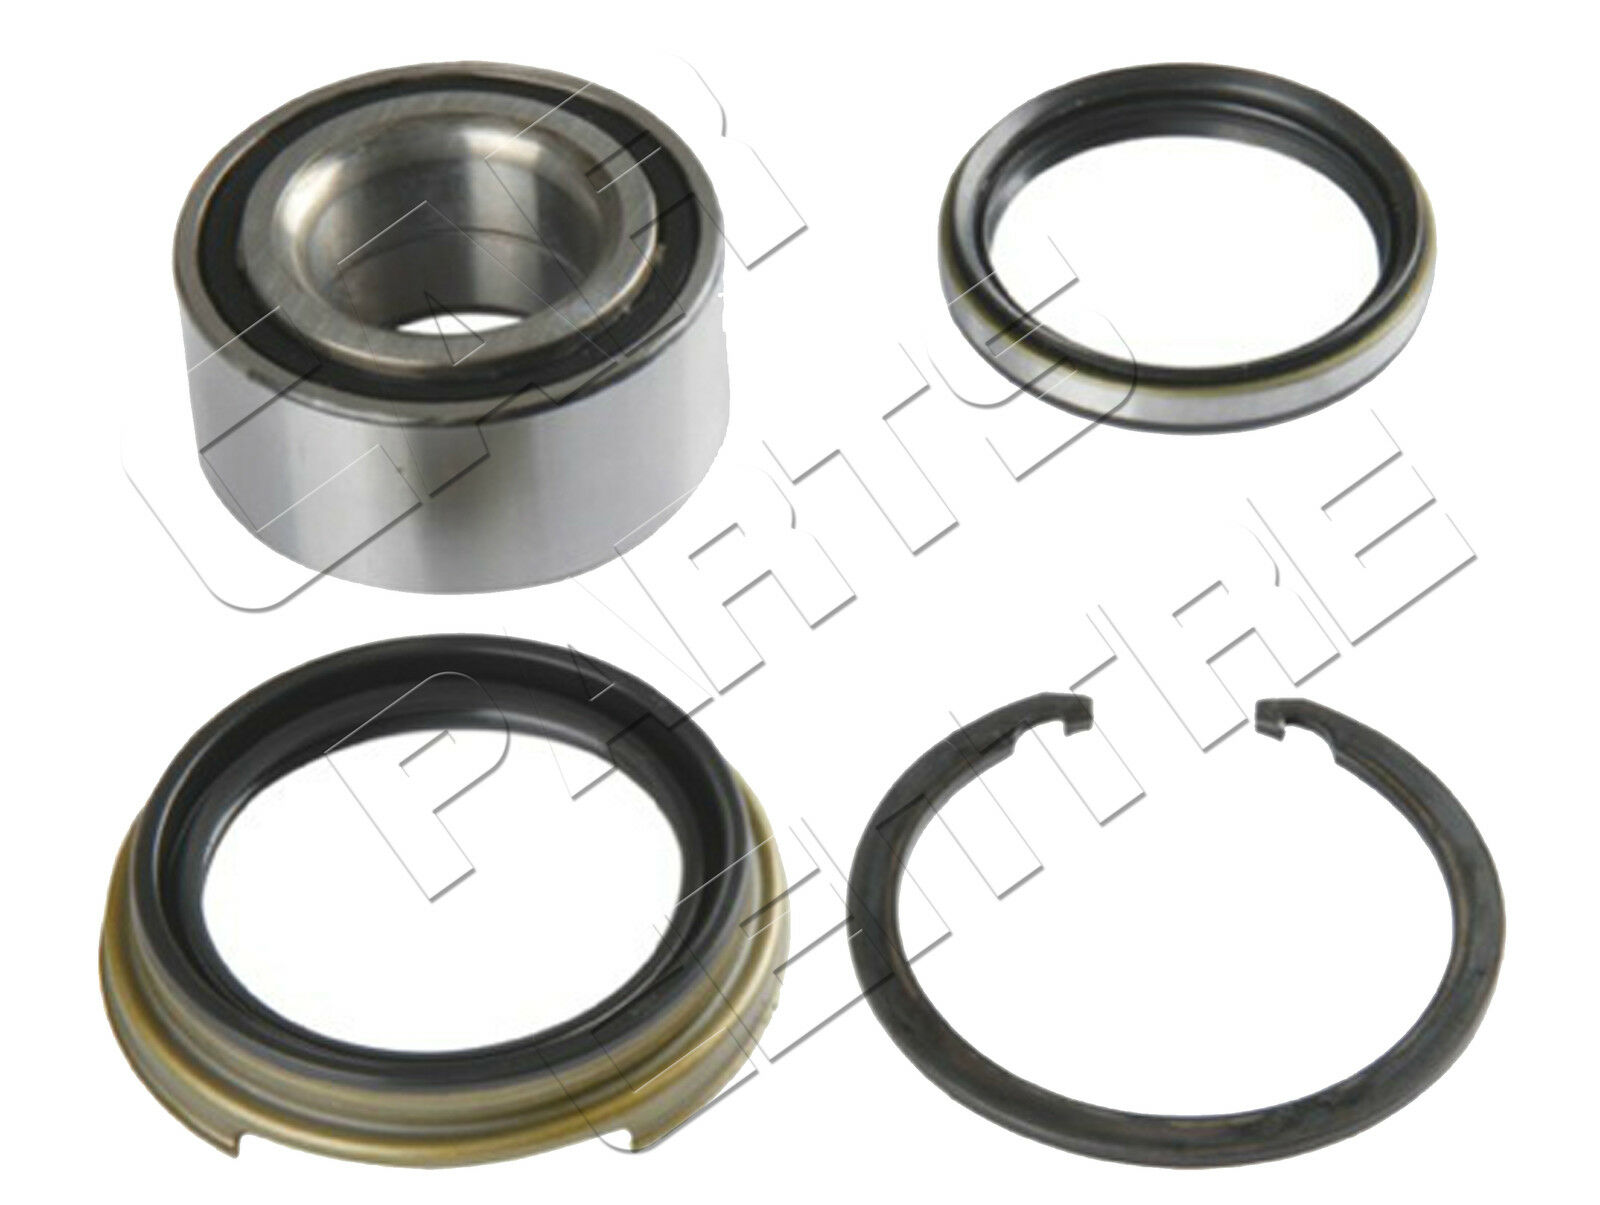 FOR Toyota Starlet 1.3 GT Turbo Glanza V EP82 EP91 Rear Wheel Bearing Kit